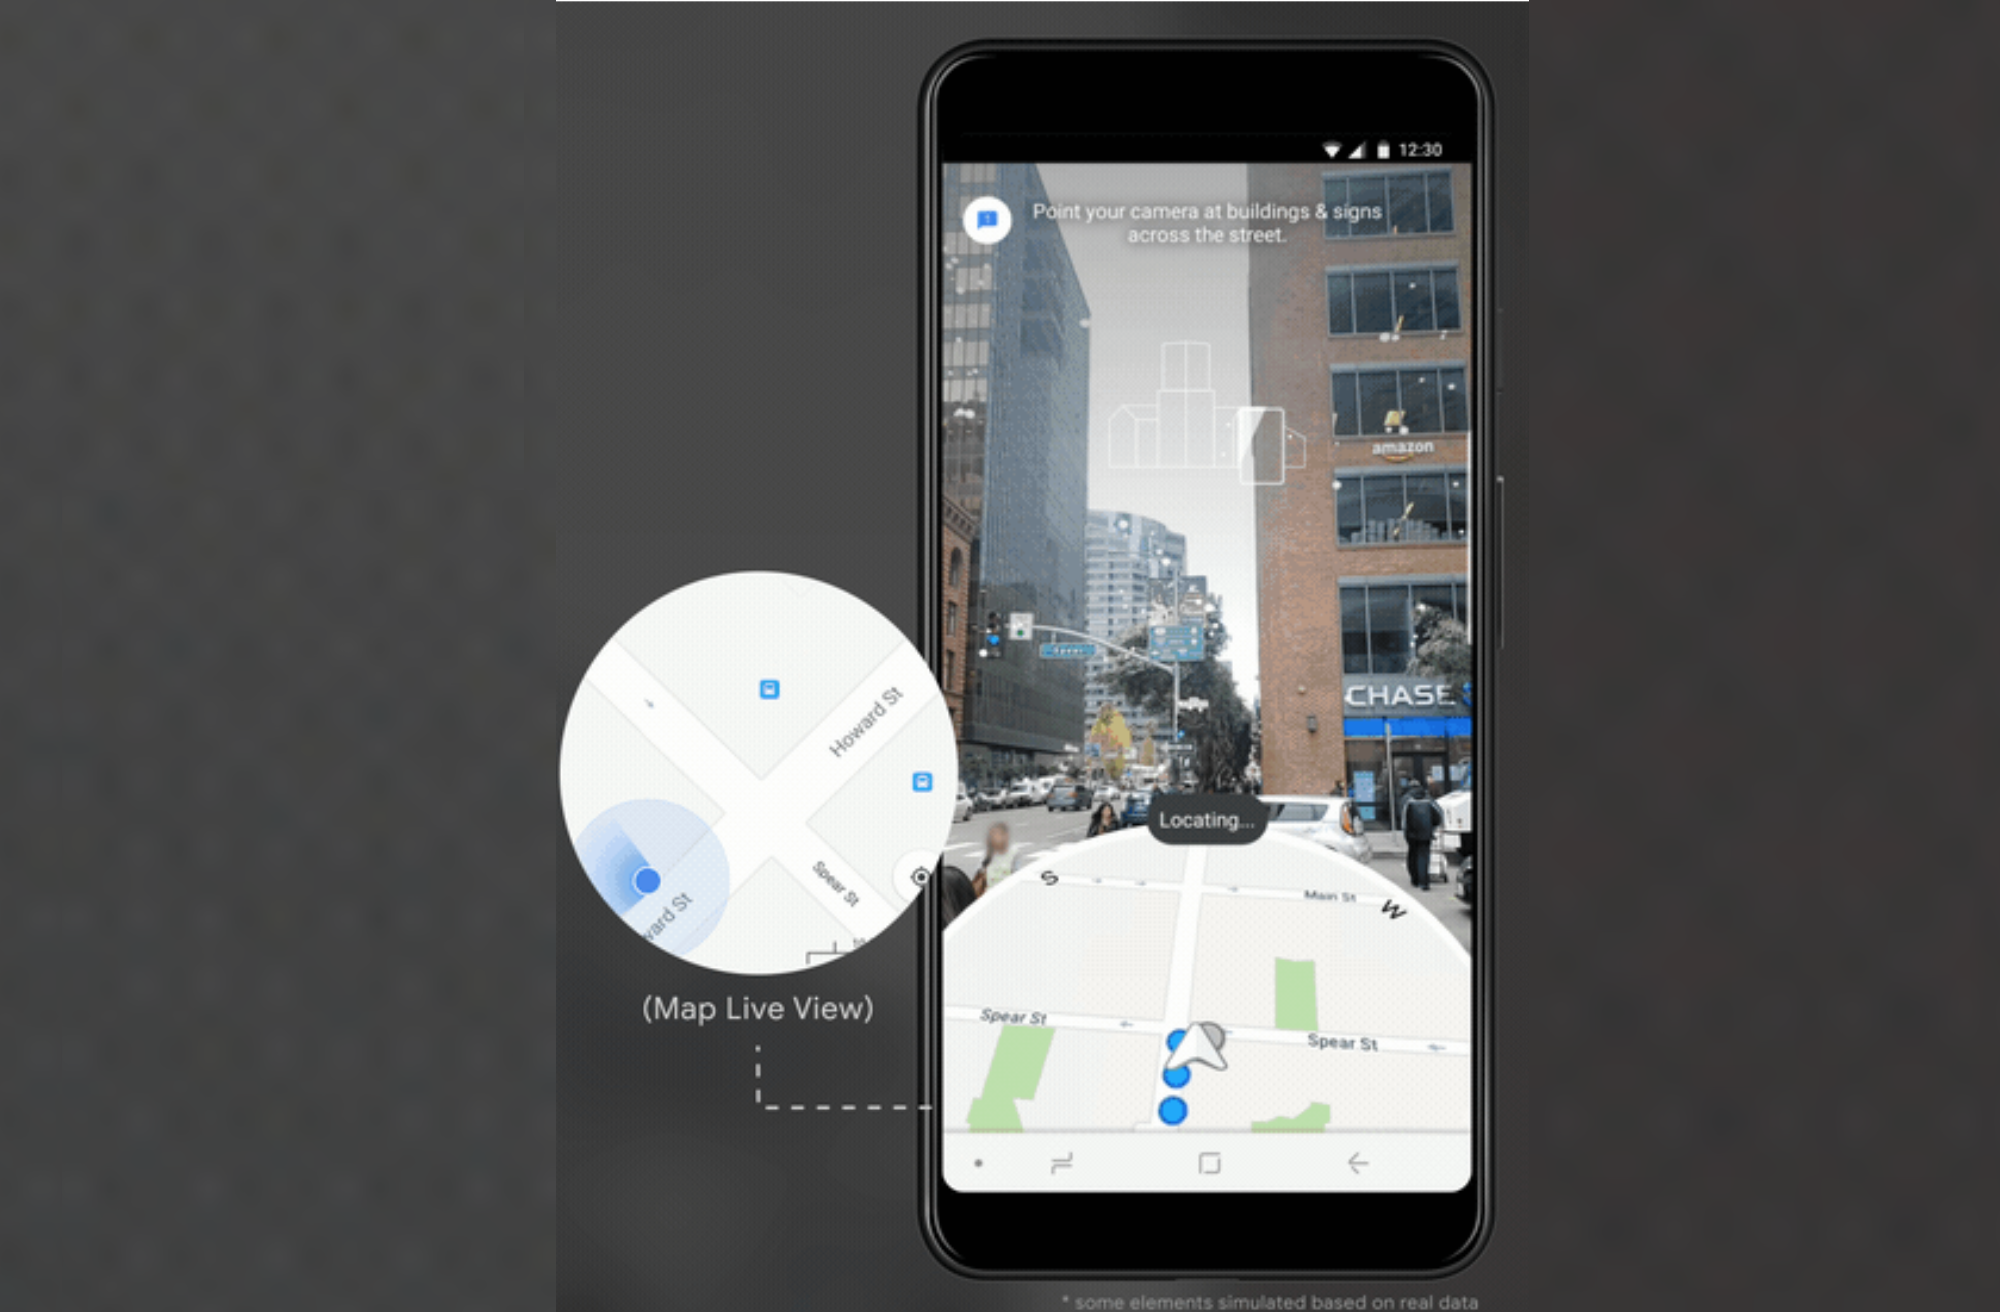 Google Maps will use your camera to determine your location